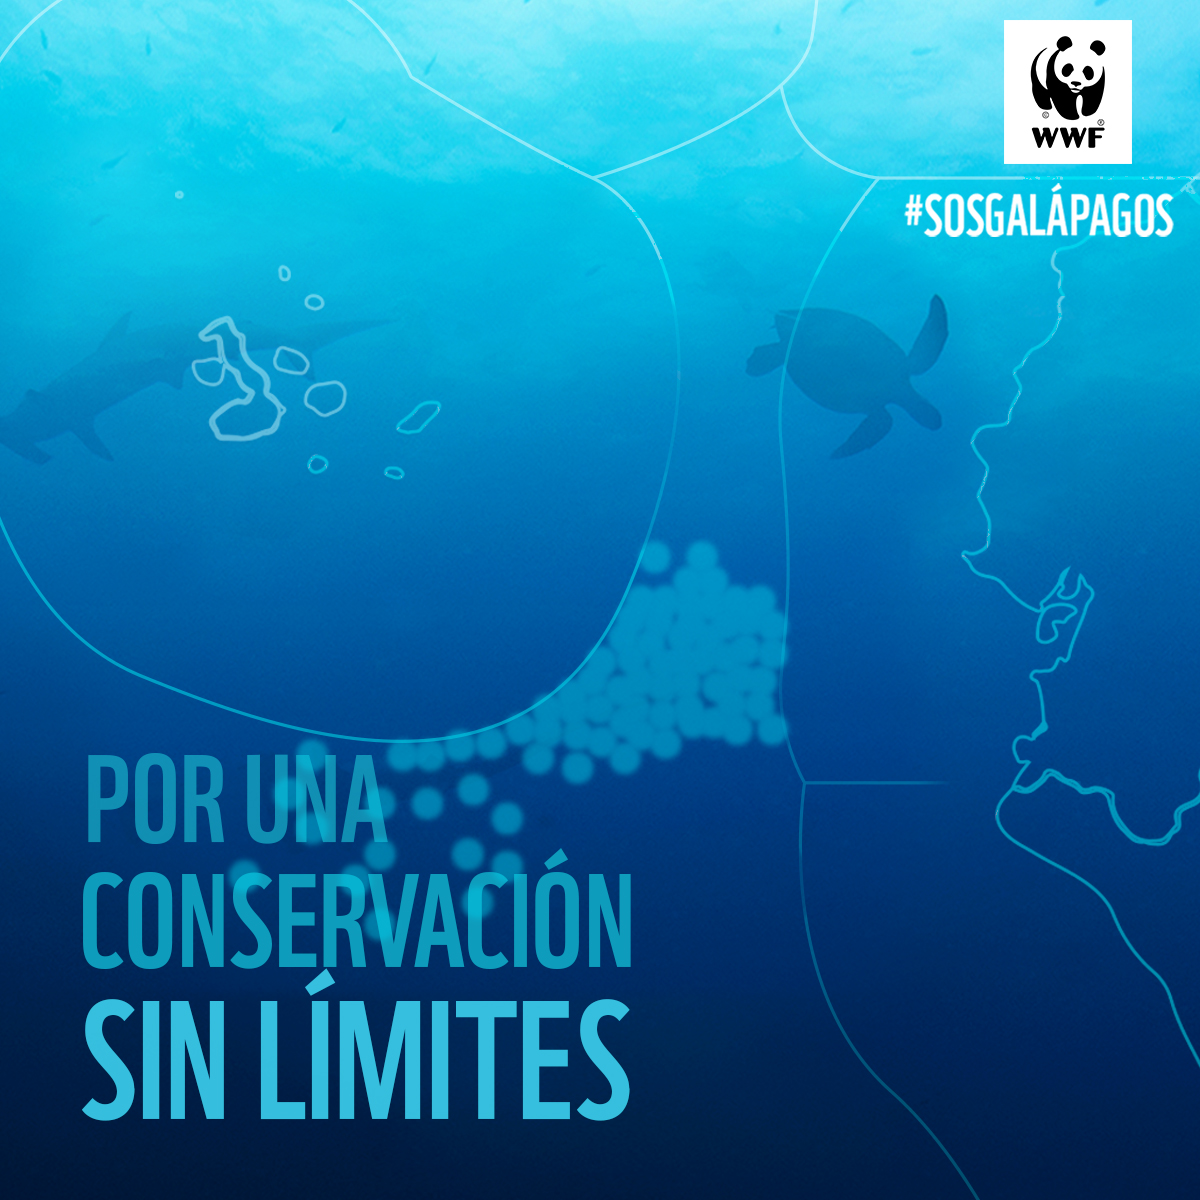 WWF galapagos conservation